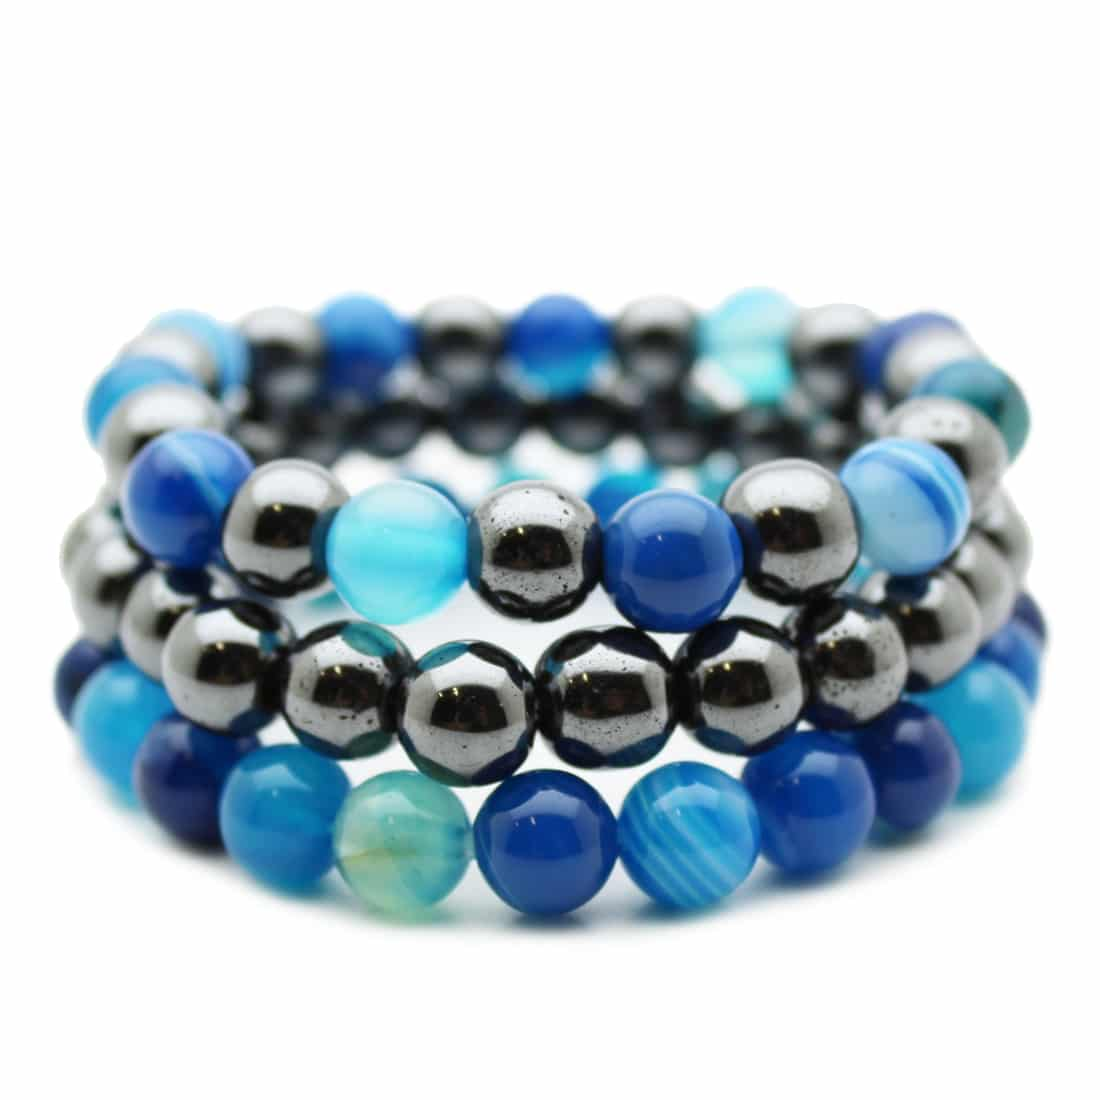 lot de 3 bracelets agate bleu et h matite perles 8 mm 3st08 agbhem fityo. Black Bedroom Furniture Sets. Home Design Ideas